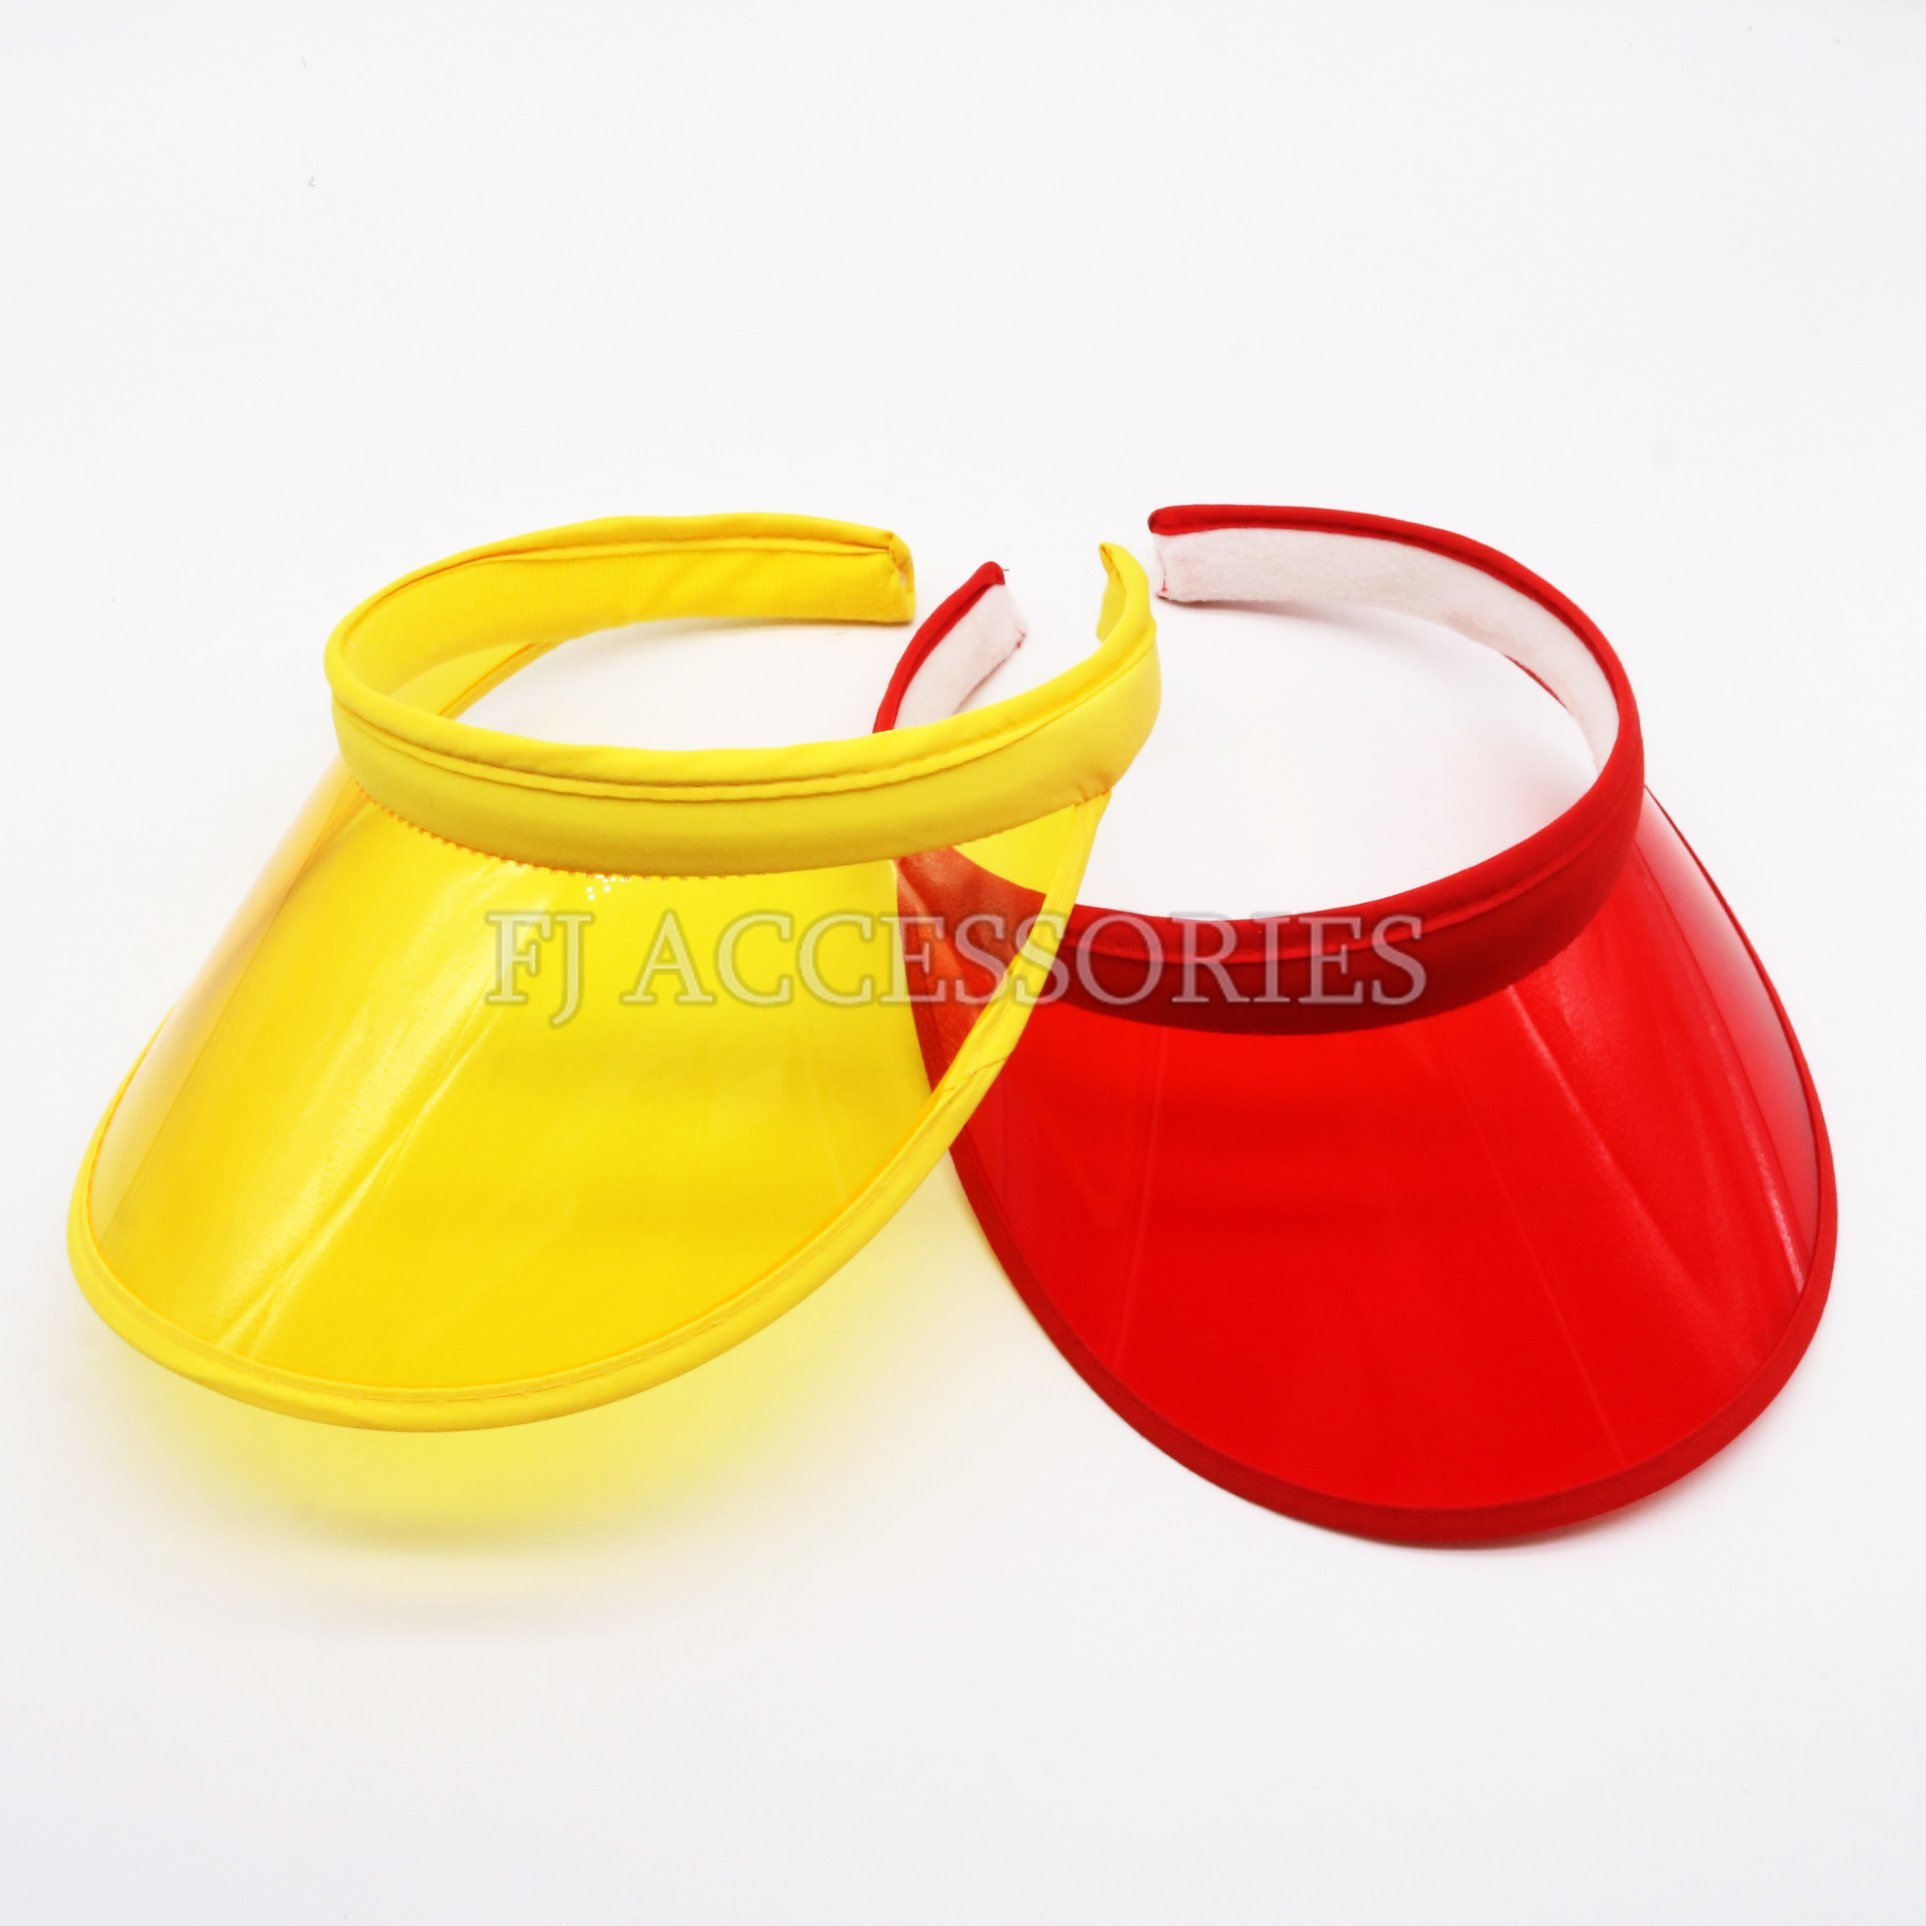 1ab743129a34c5 China Fashion & Portable UV Plastic Sun Visor Cap Hats with Short Lens -  China UV Protection, Sun Visor Cap